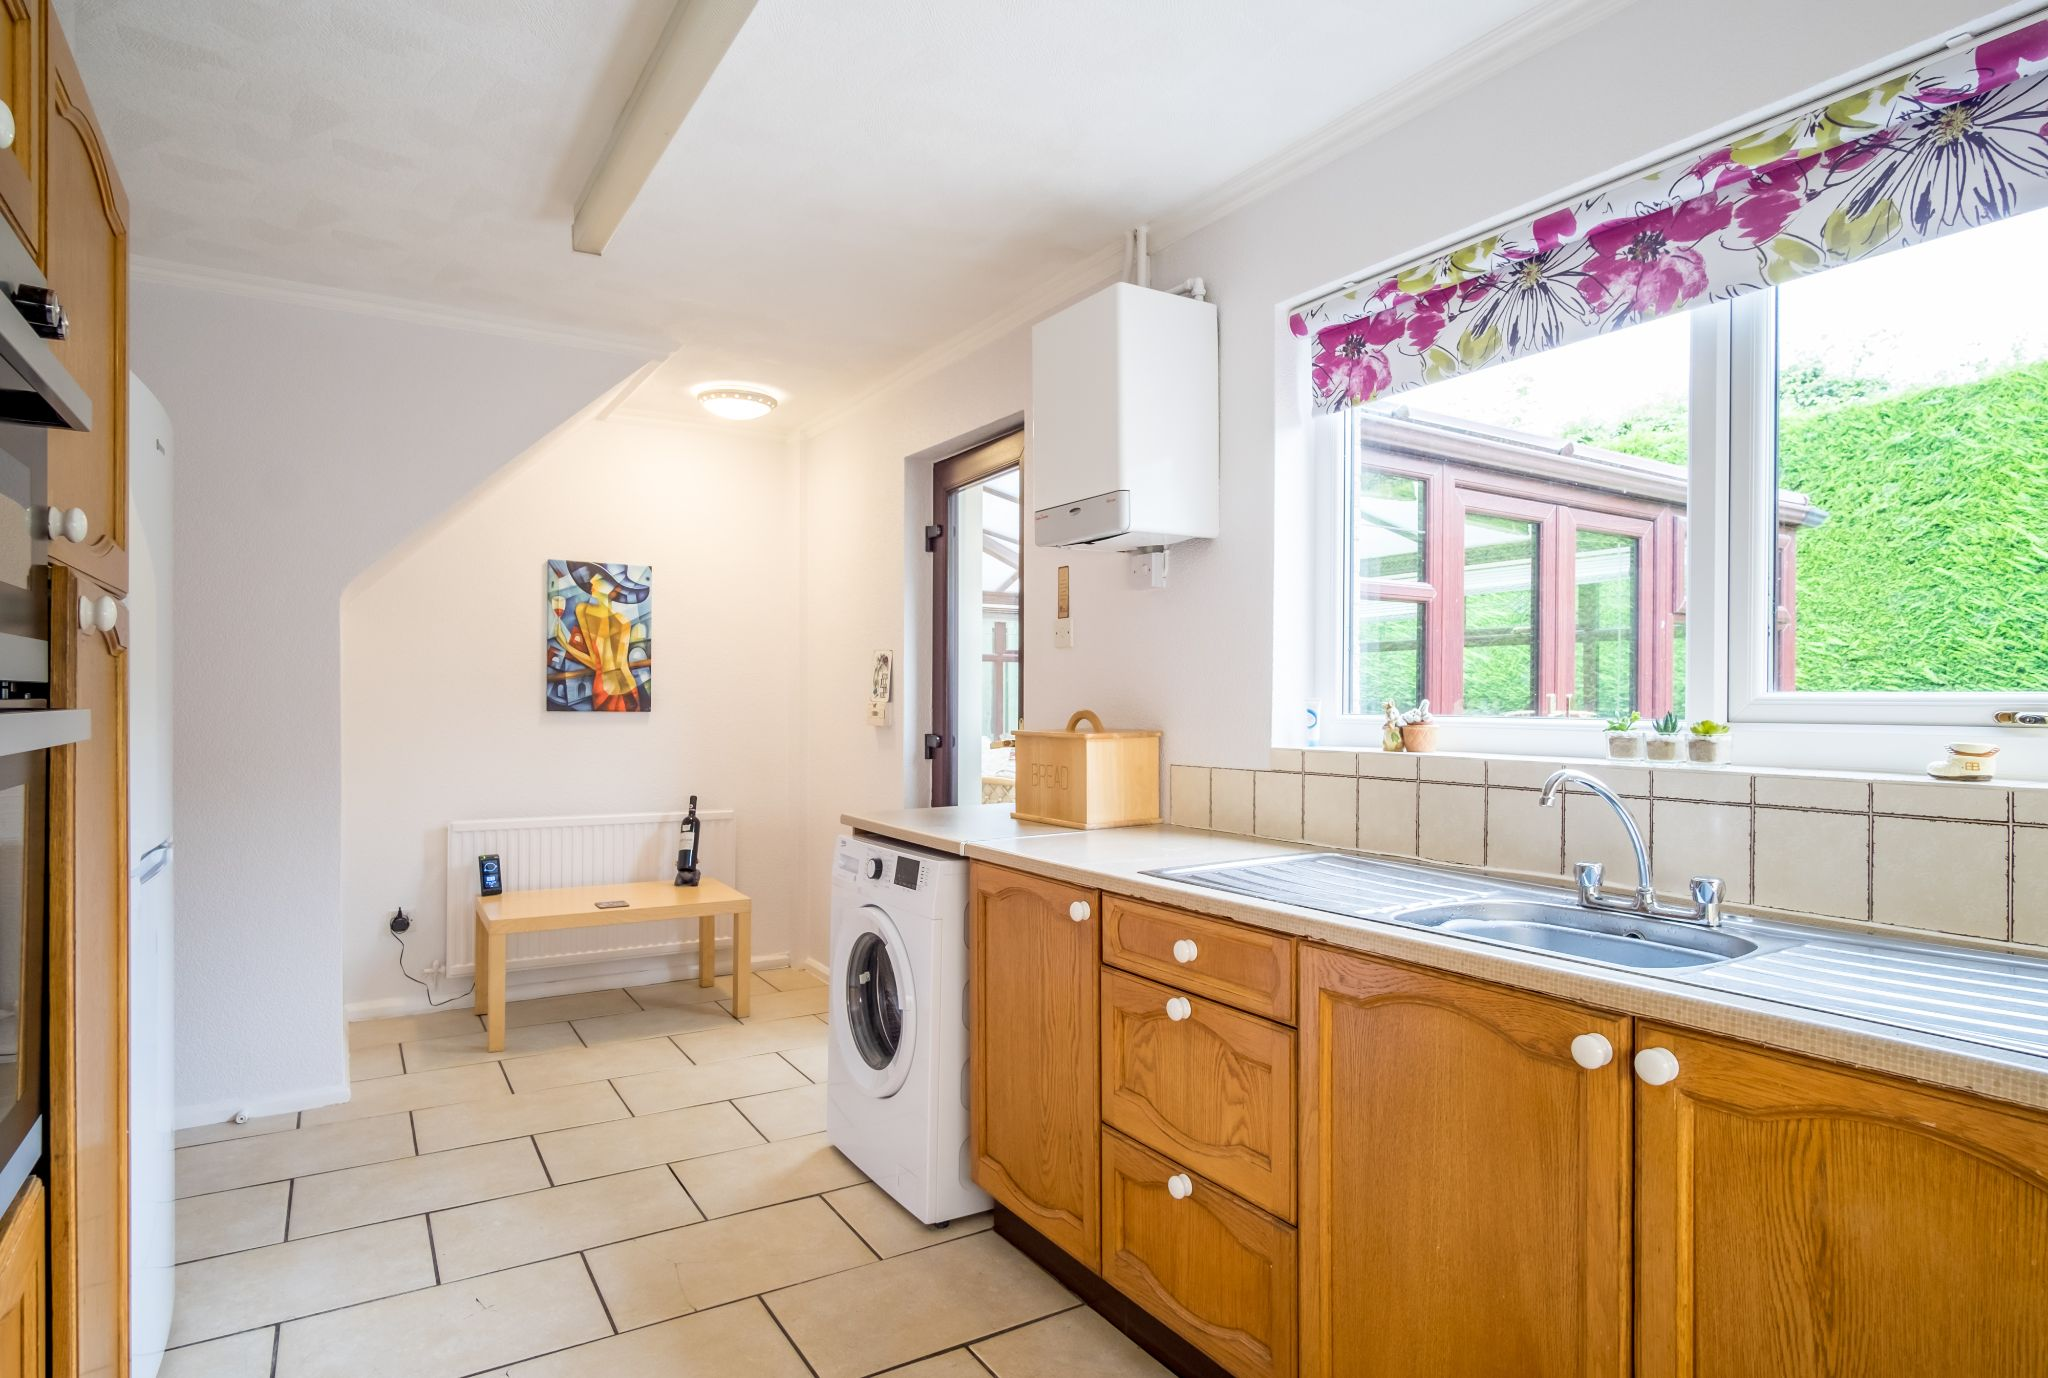 4 bedroom detached house For Sale in Brighouse - Kitchen